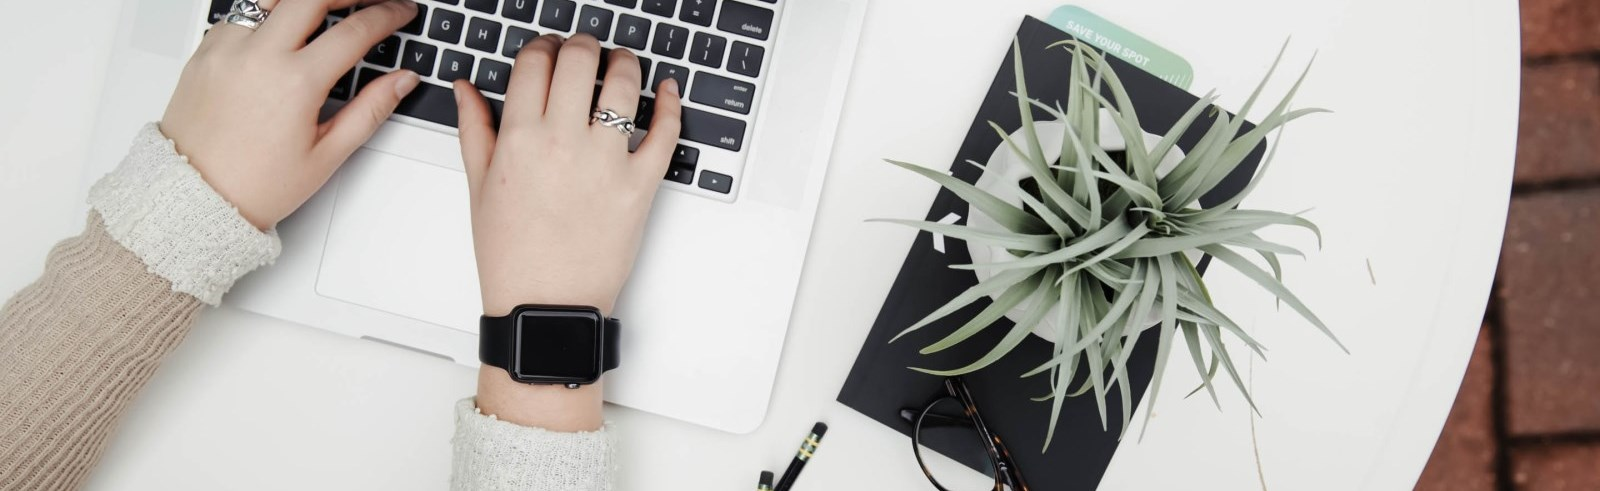 Hands wearing a watch and typing on a laptop with an aloe vera plant nearby